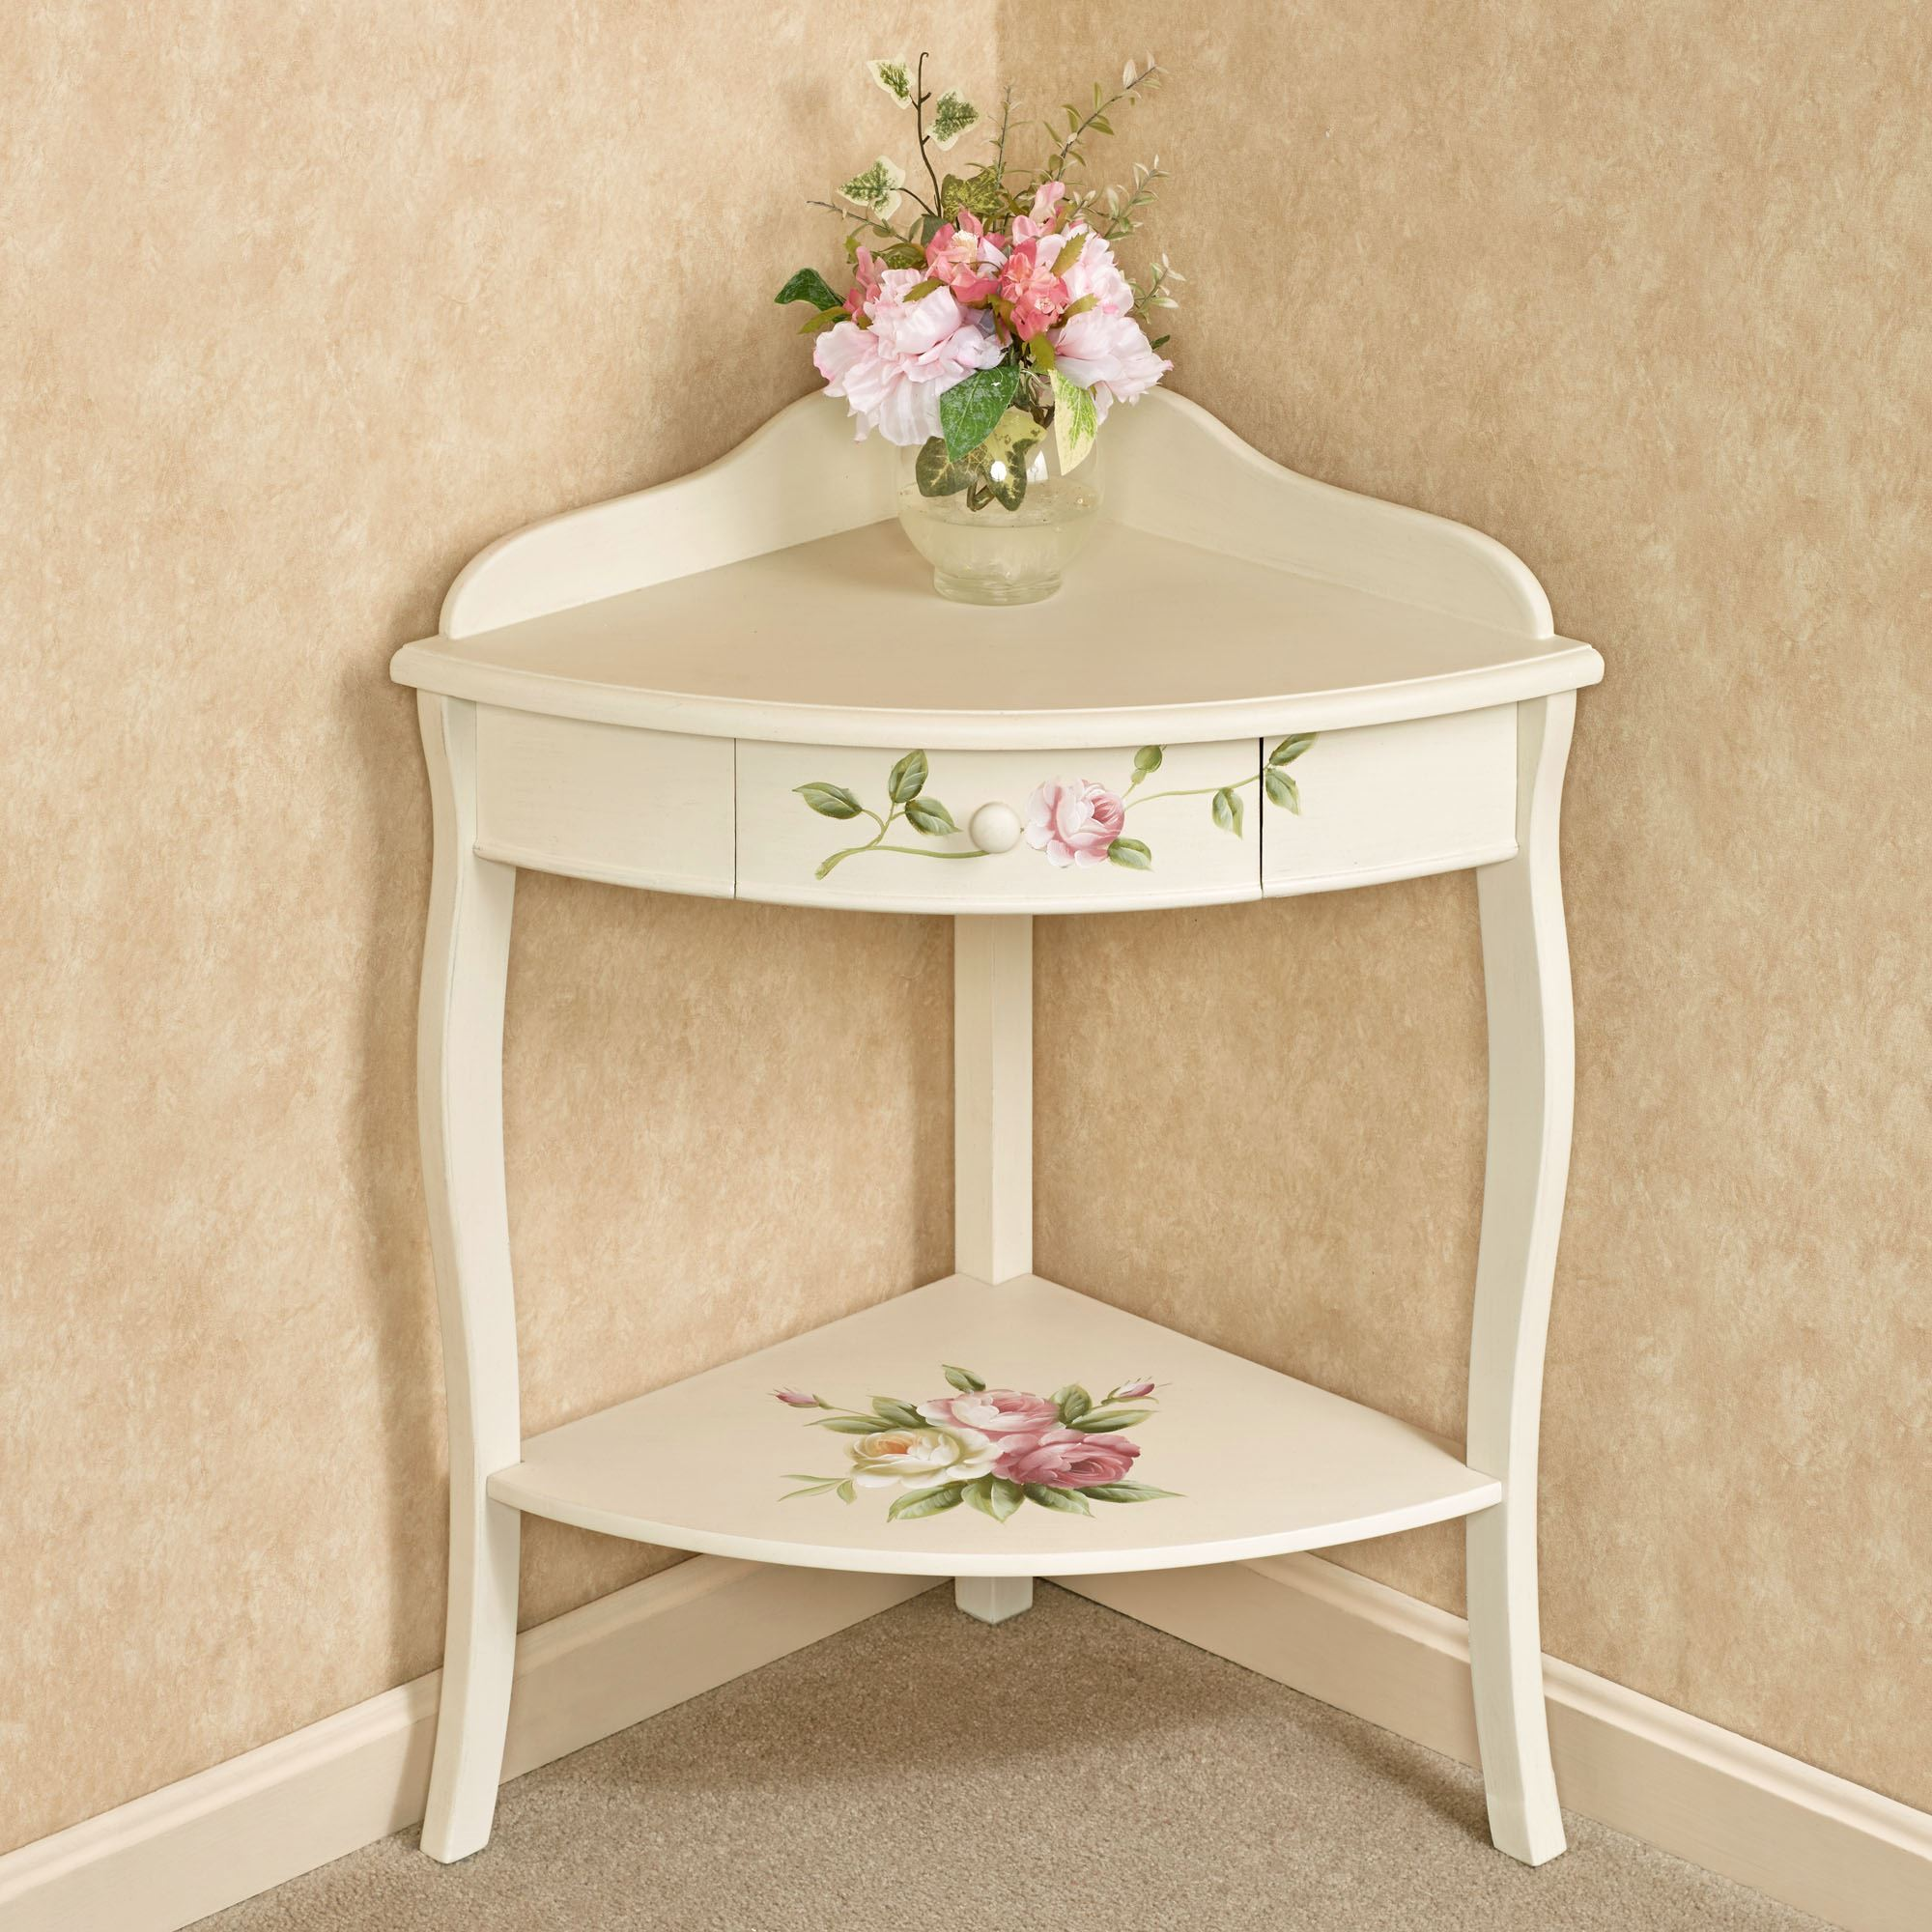 Exceptionnel Rosalinde Corner Table Light Cream. Touch To Zoom